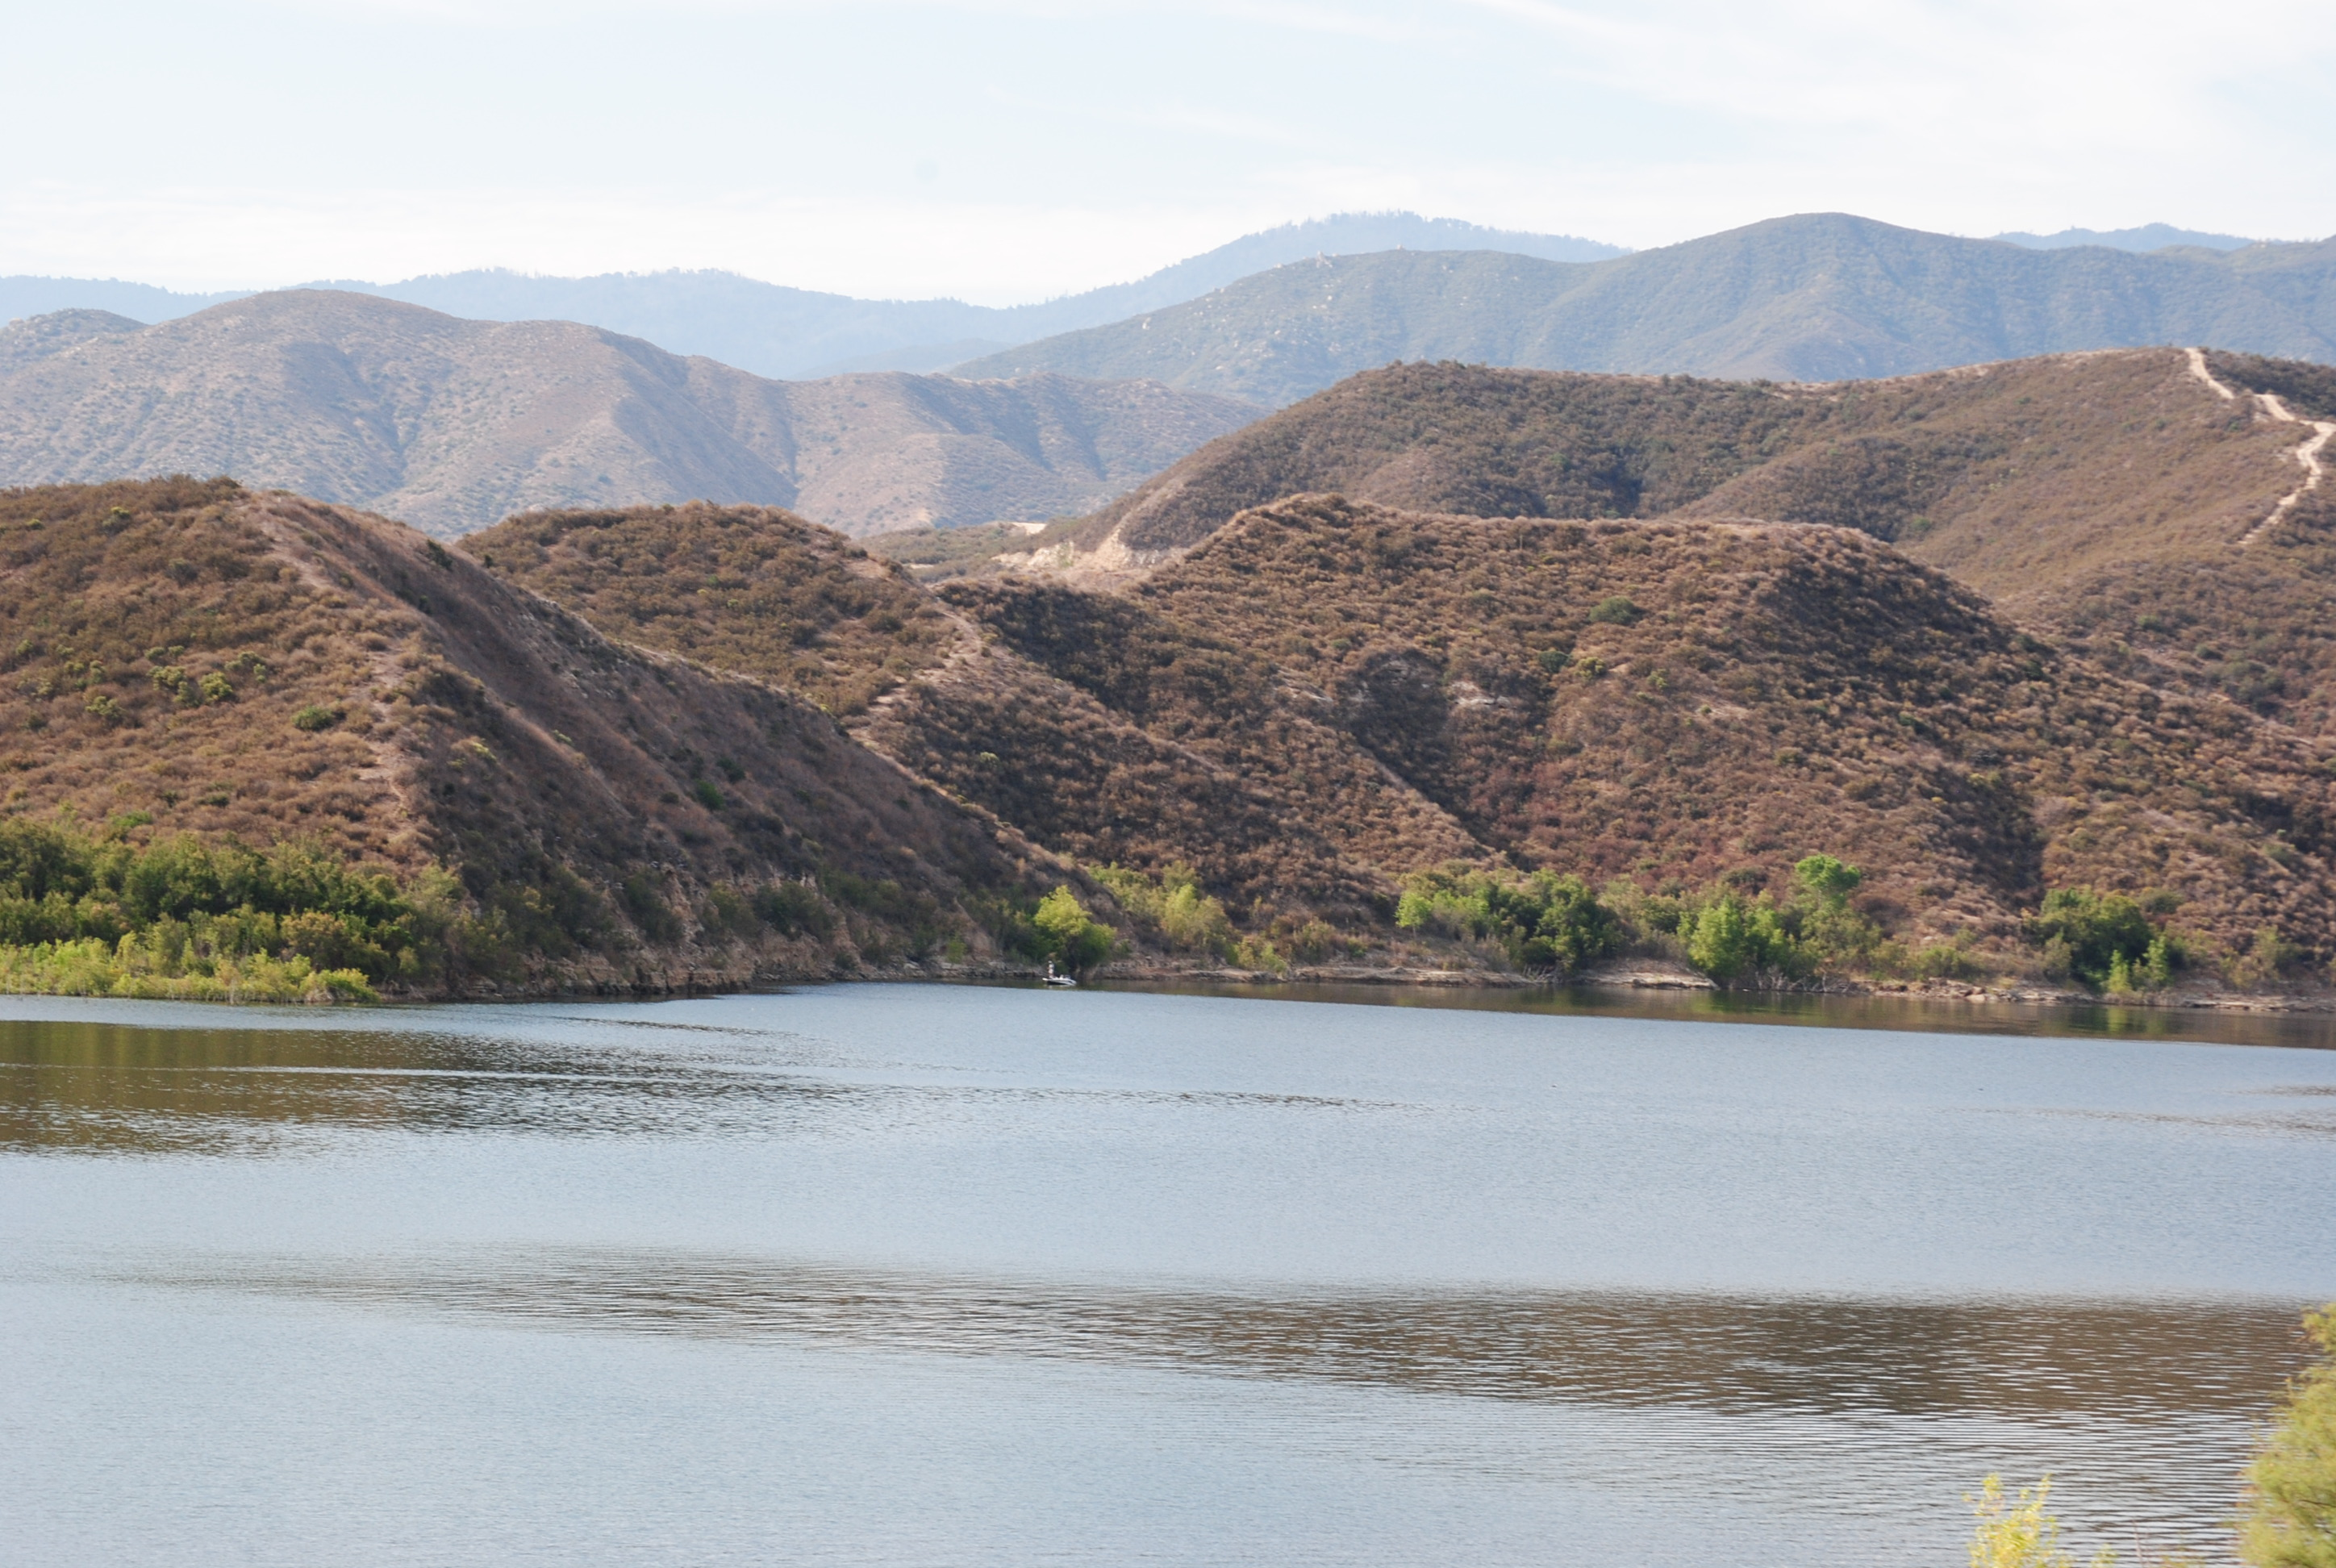 Image of Vail Lake